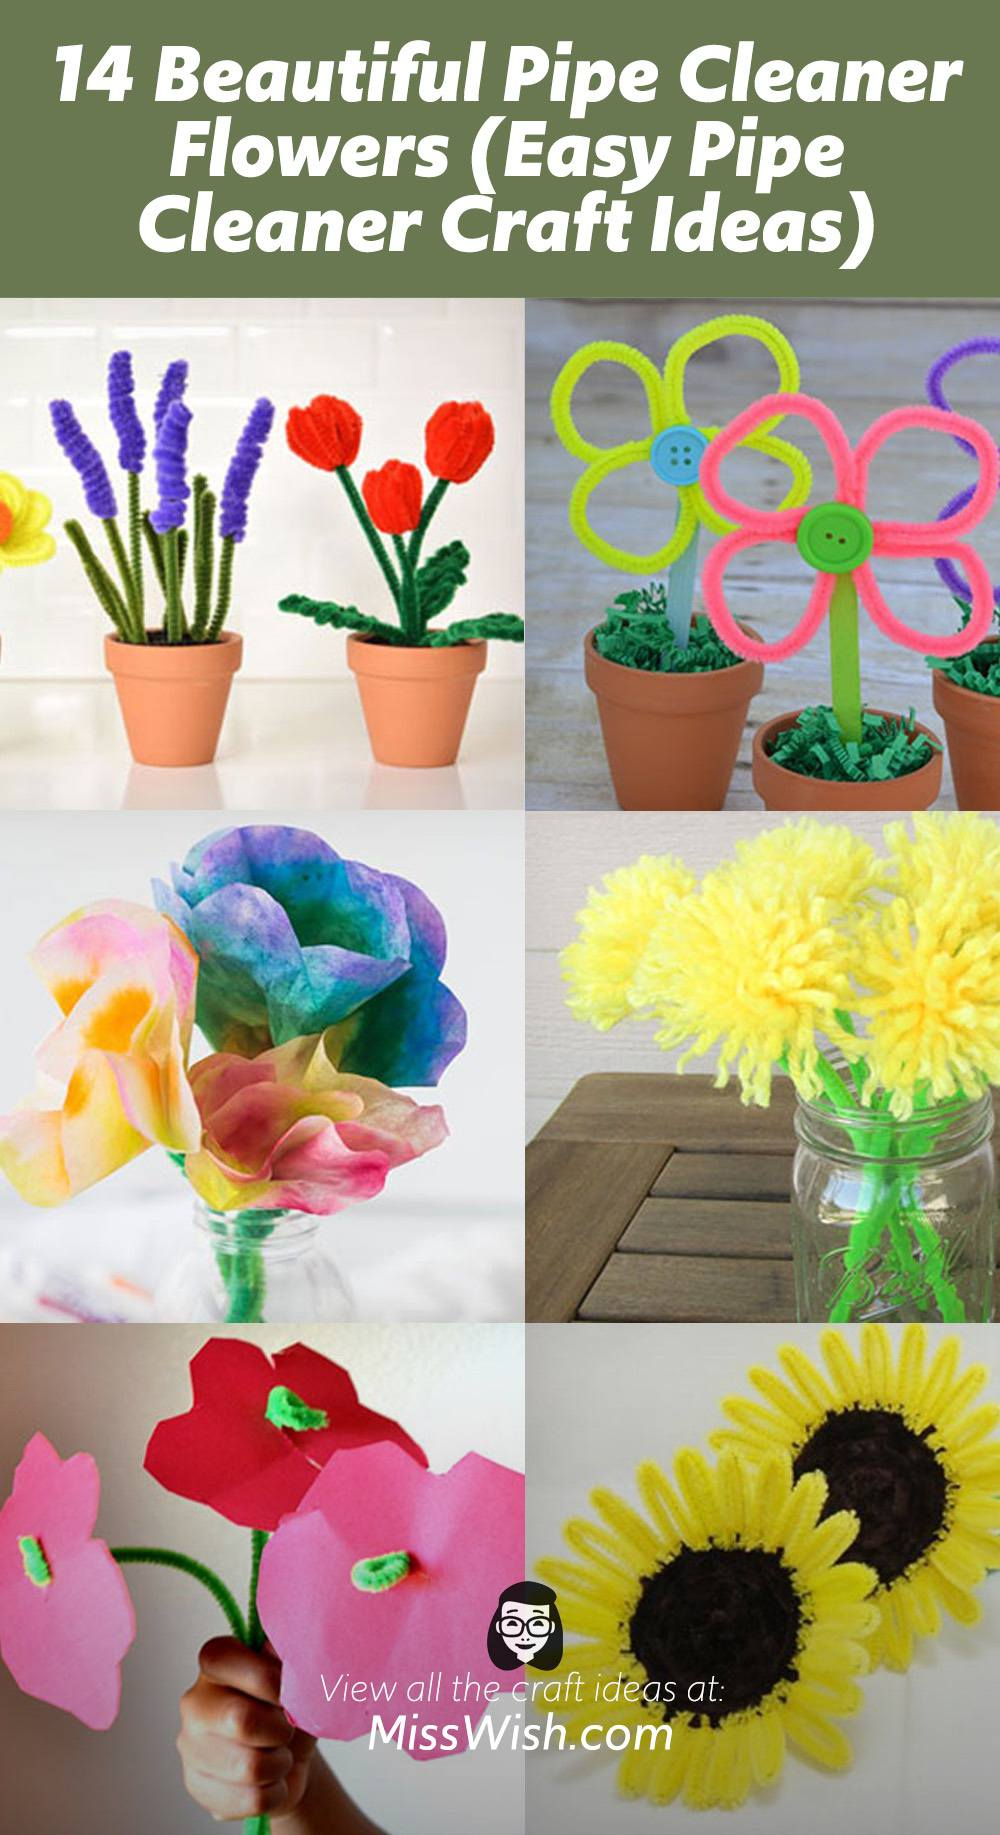 14 Beautiful Pipe Cleaner Flowers